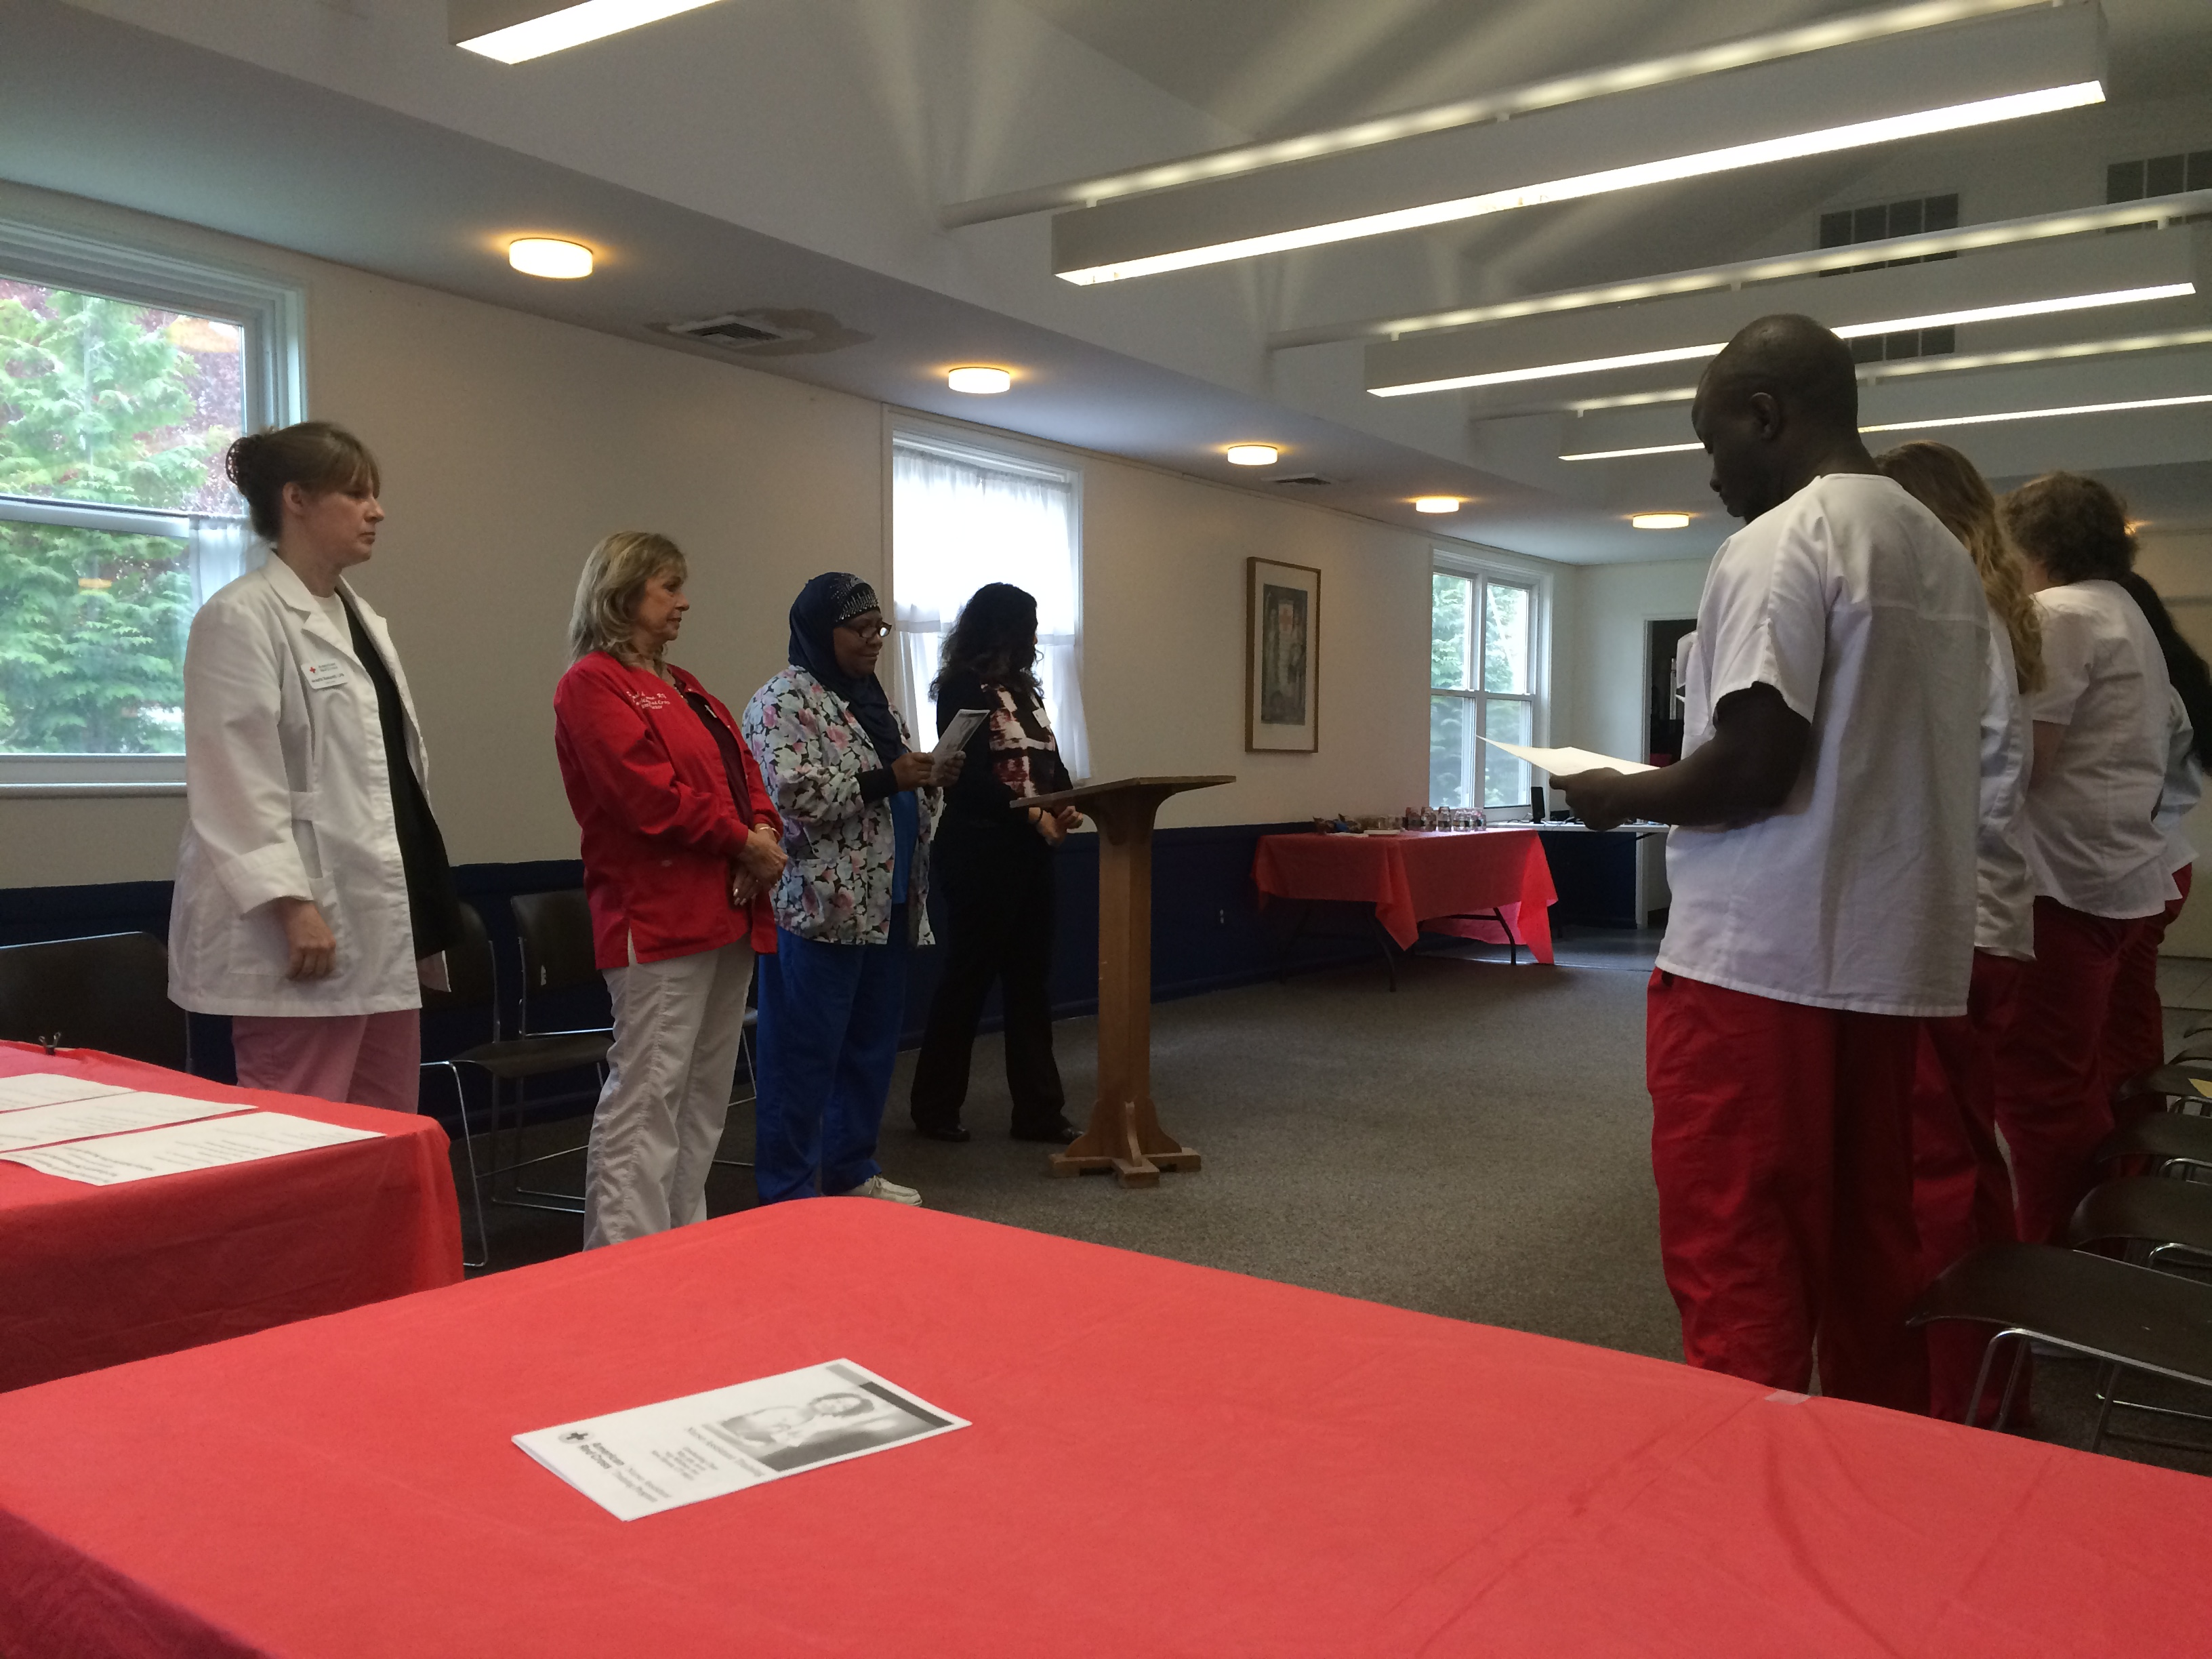 Utopia home care american red cross cna graduation american red cross is located at 703 whitney ave in new haven ct and 1057 broad street in bridgeport ct 1betcityfo Choice Image